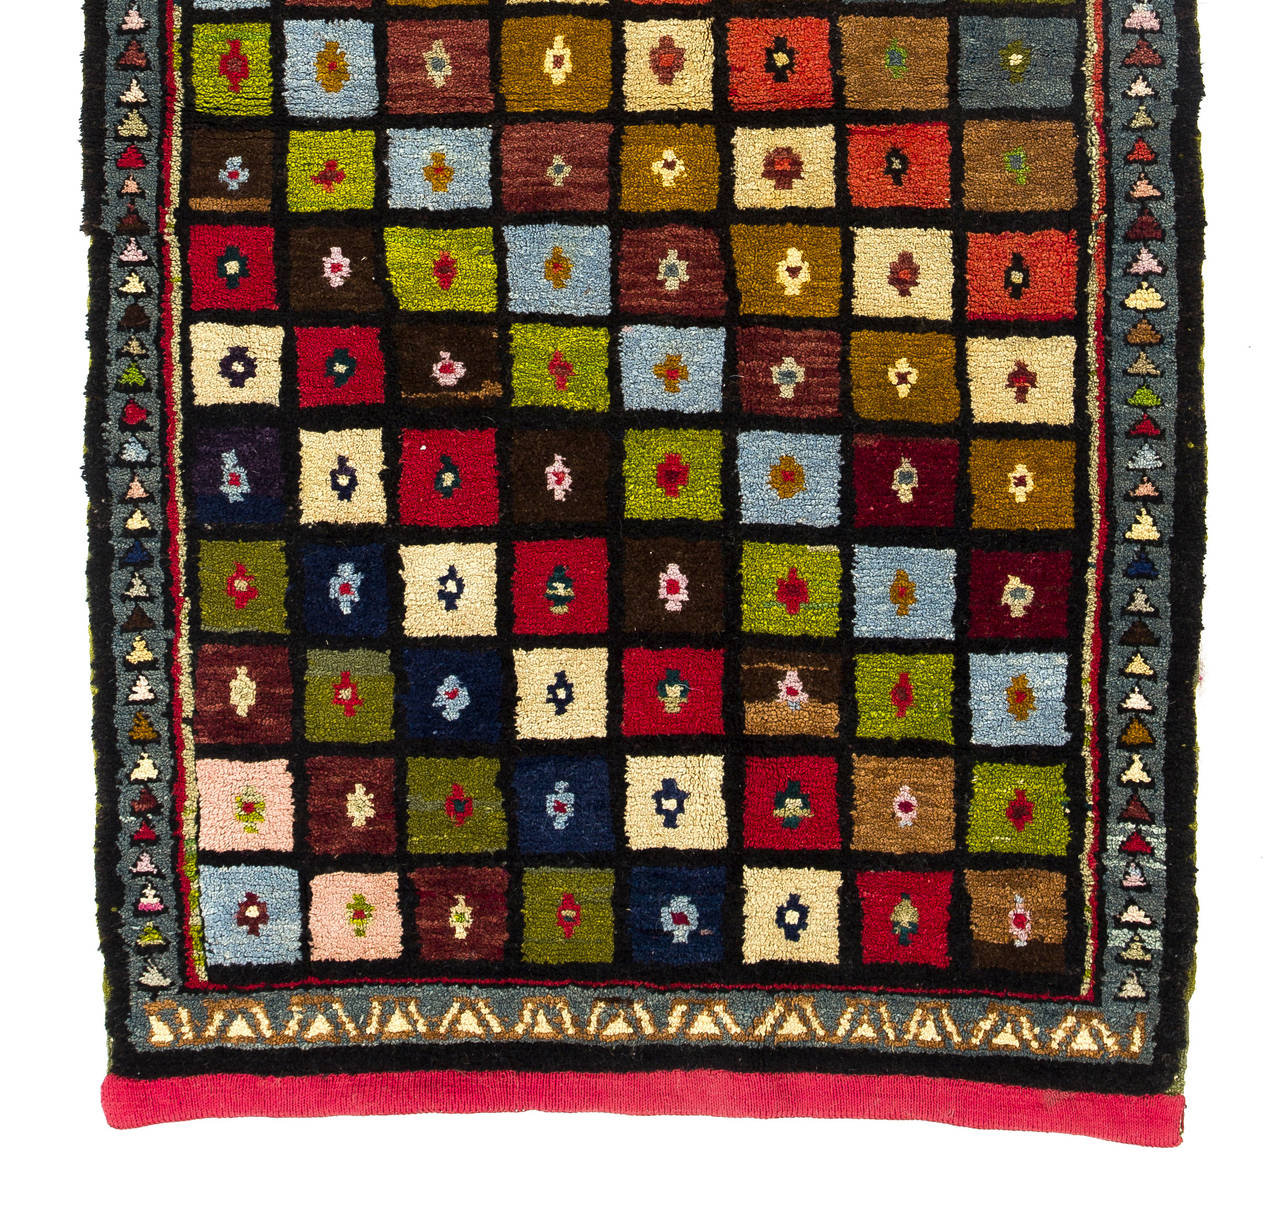 Colorful mid century modern turkish rug for sale at 1stdibs for Colorful rugs for sale